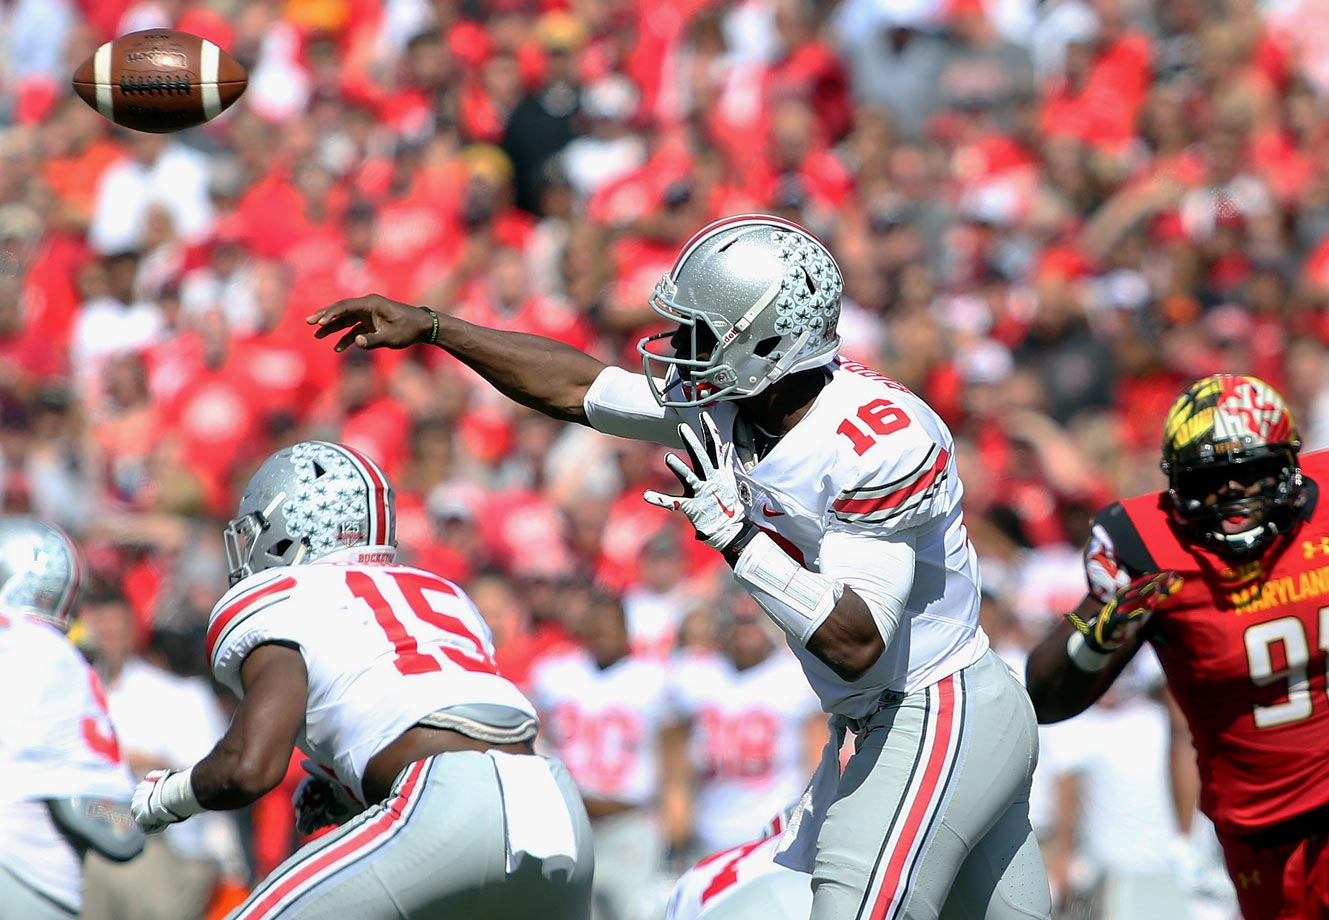 The Buckeyes gave Maryland a cold welcome to the Big Ten in the Terrapins' first home conference  game. Barrett continued to show his rapid improvement, passing for 267 yards with five total touchdowns, and Ohio State's defense forced four interceptions.